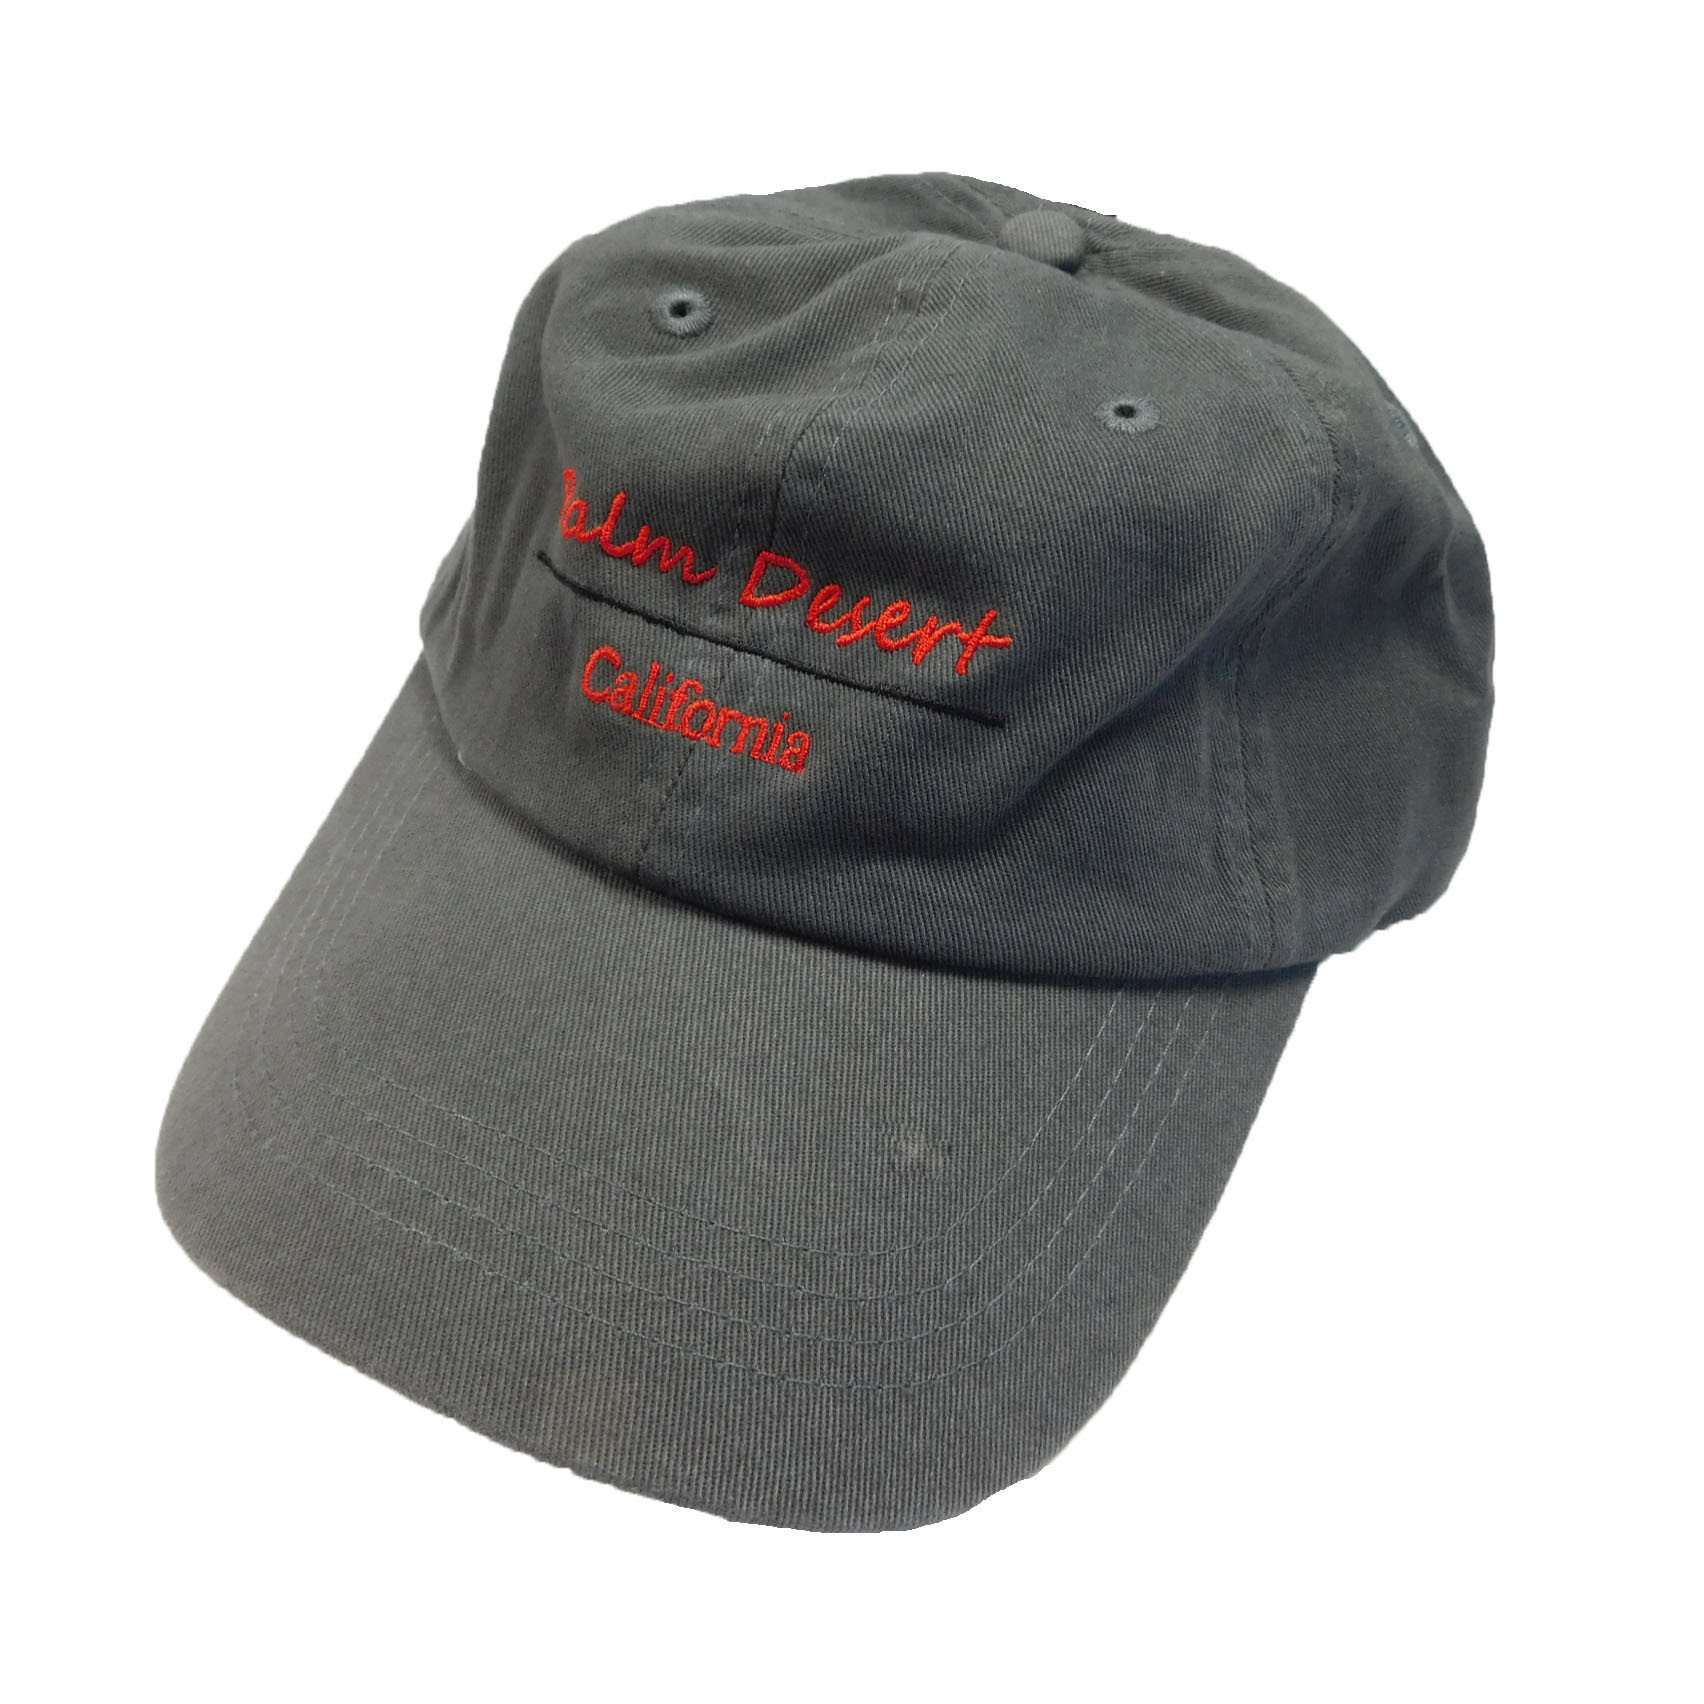 Twill Baseball Cap - Charcoal - SetarTrading Hats